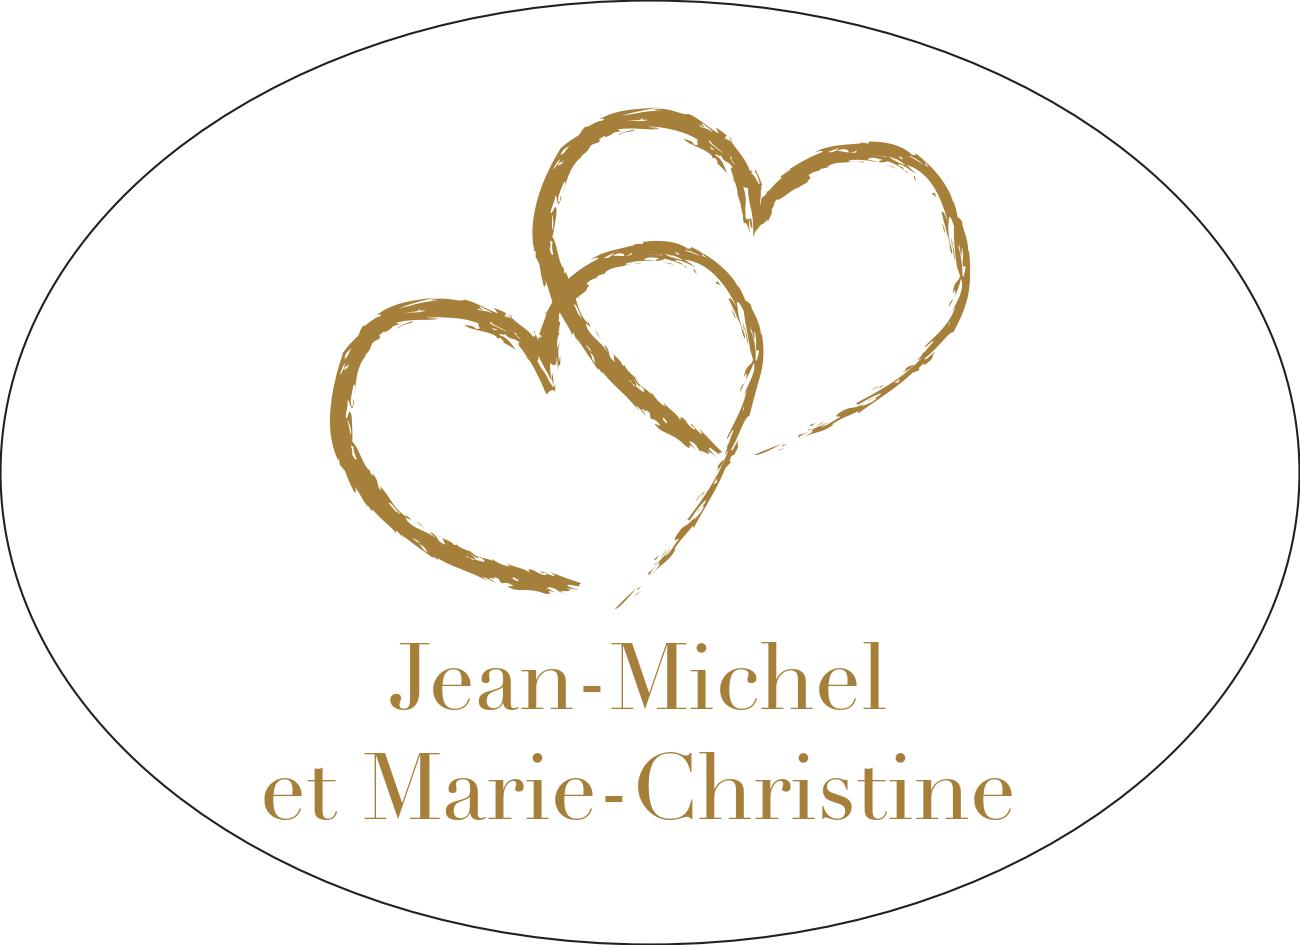 wedding-jean-michel-marie-christine